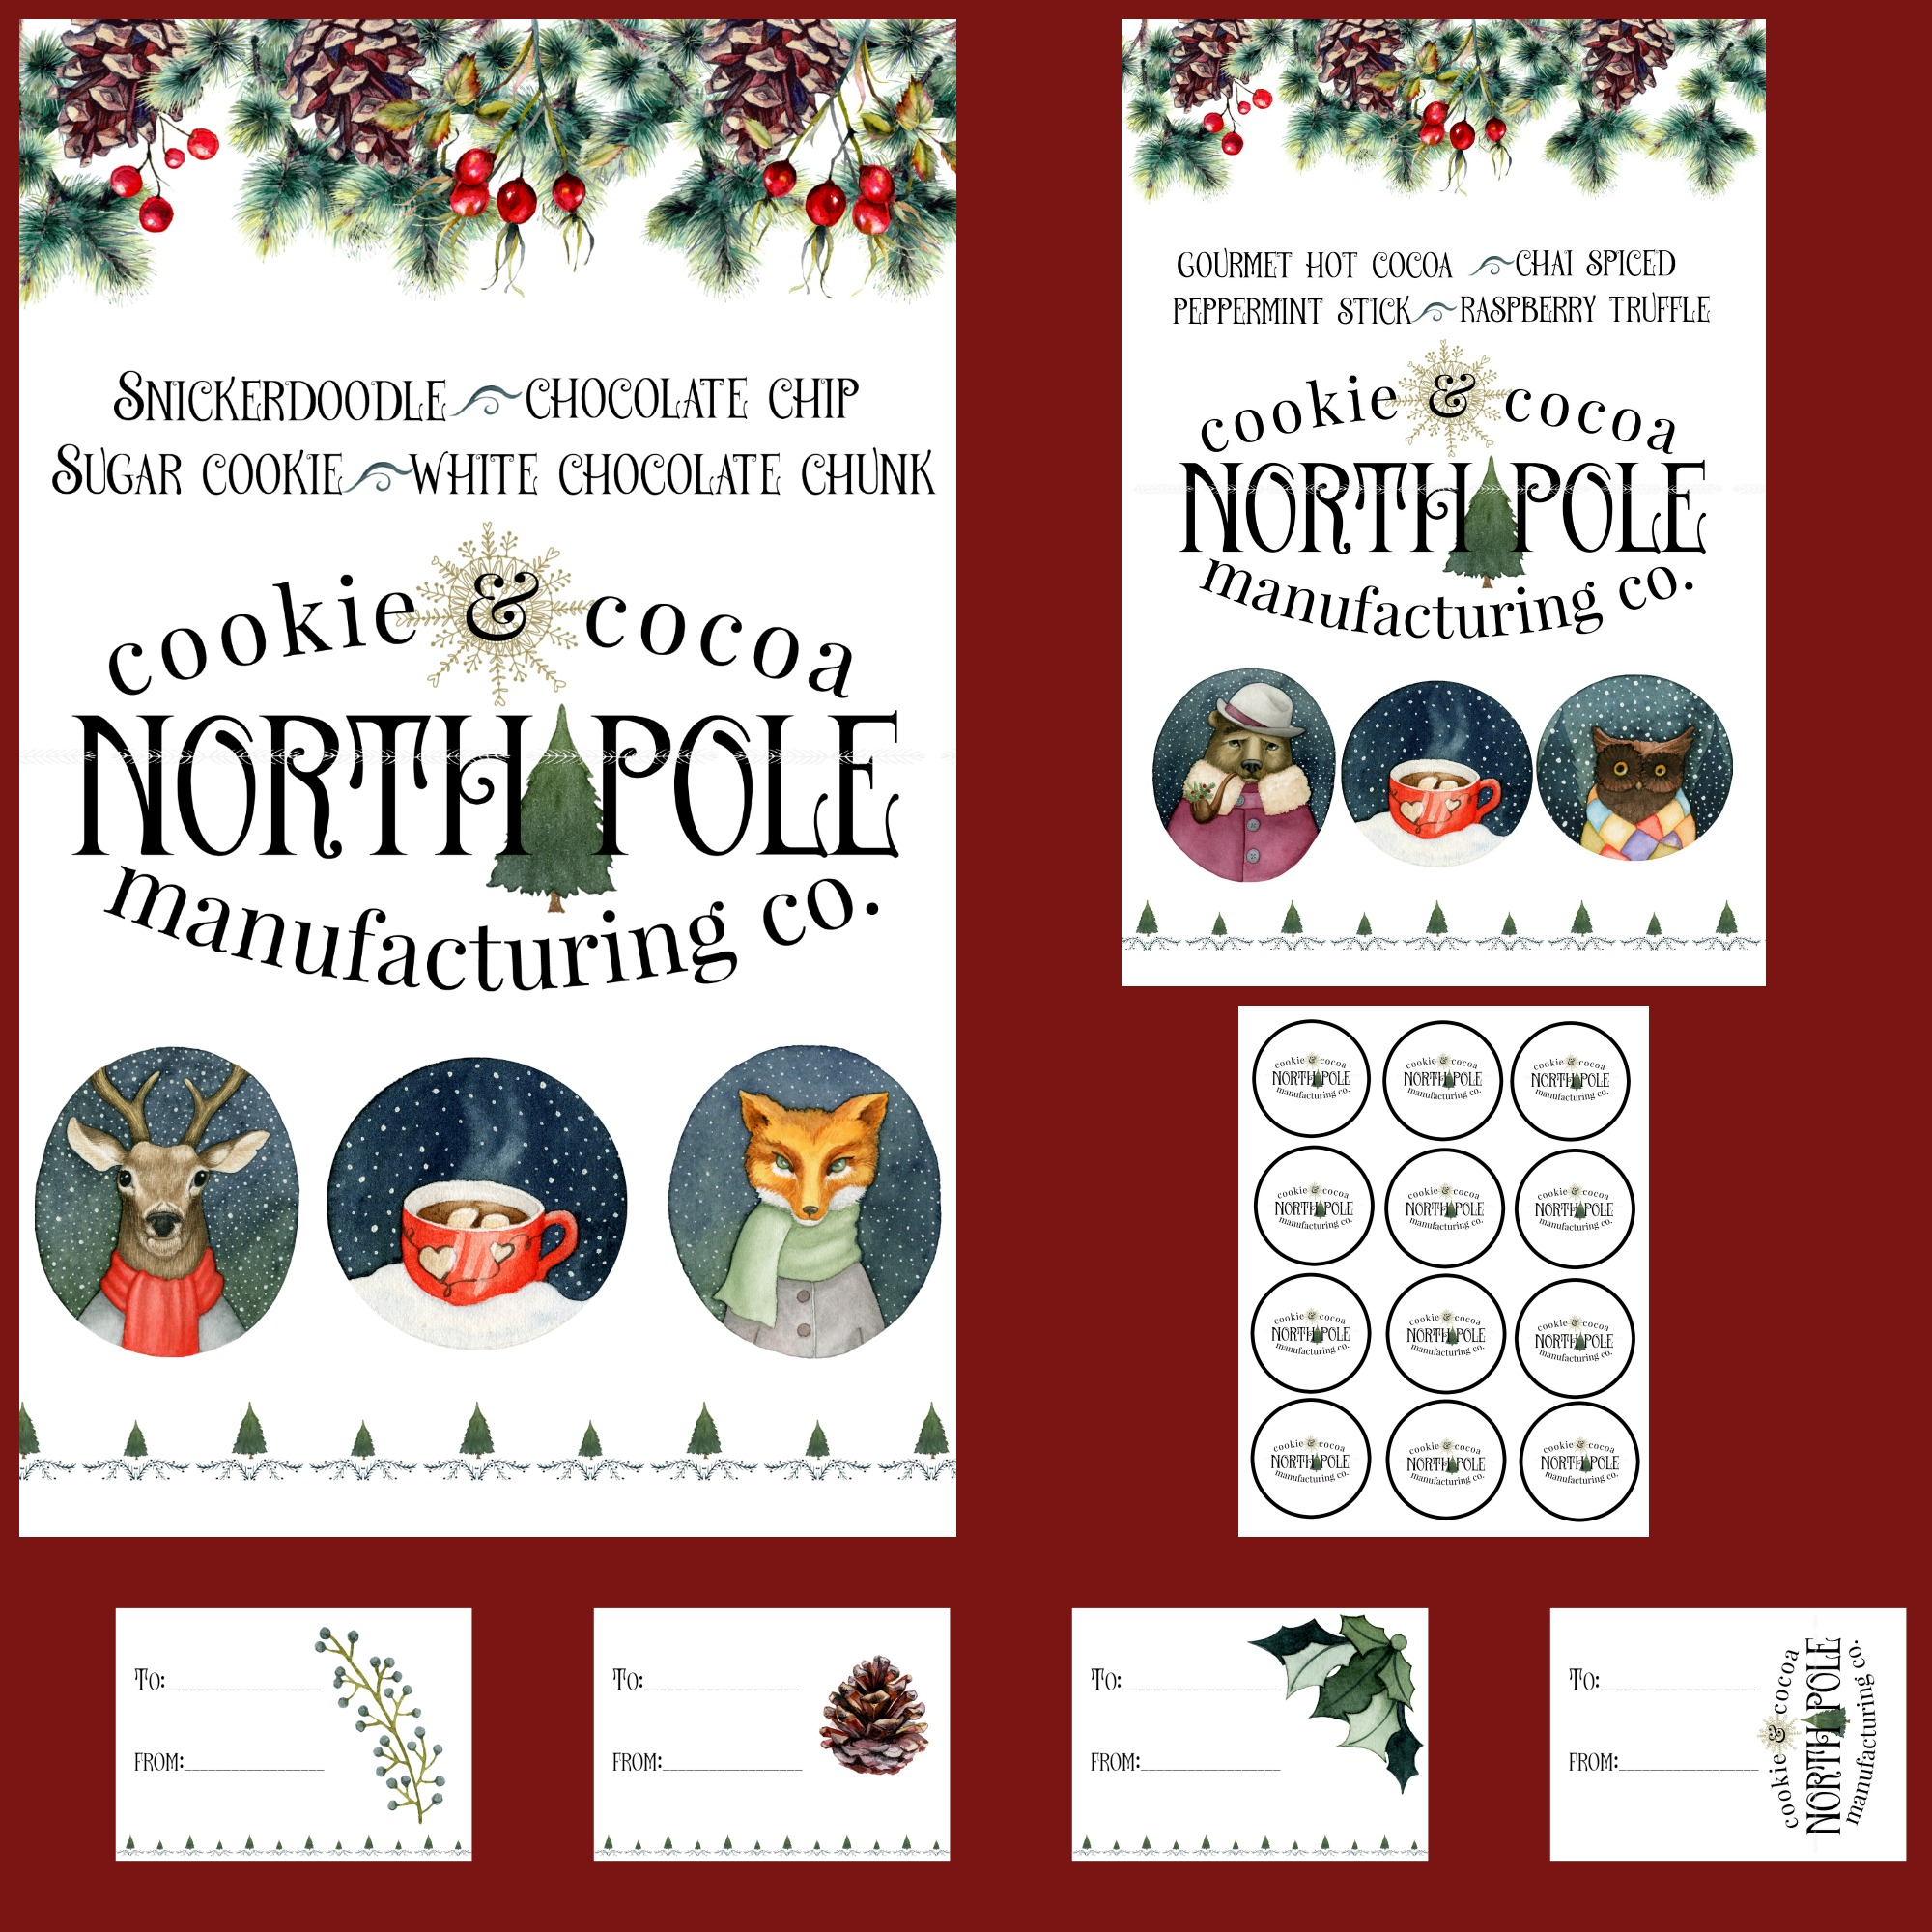 photo about Hot Cocoa Bar Printable titled North Pole Cookies Scorching Cocoa Bar Printables - Blowing Absent Out West